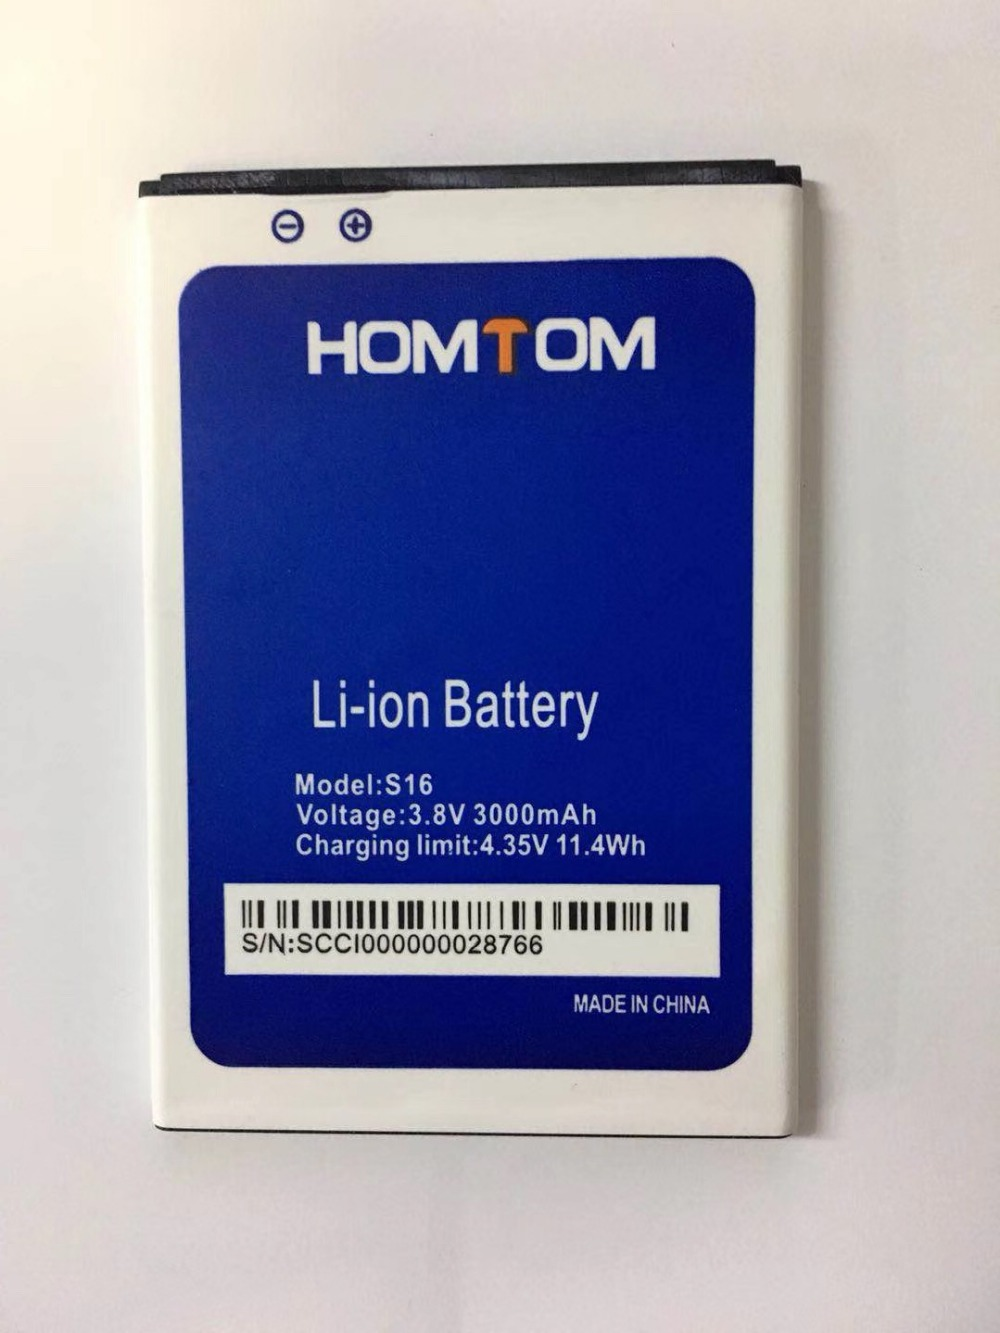 MATCHEASY 3000mAh battery for HOMTOM S16 5.5inch MTK6580 Smartphone title=